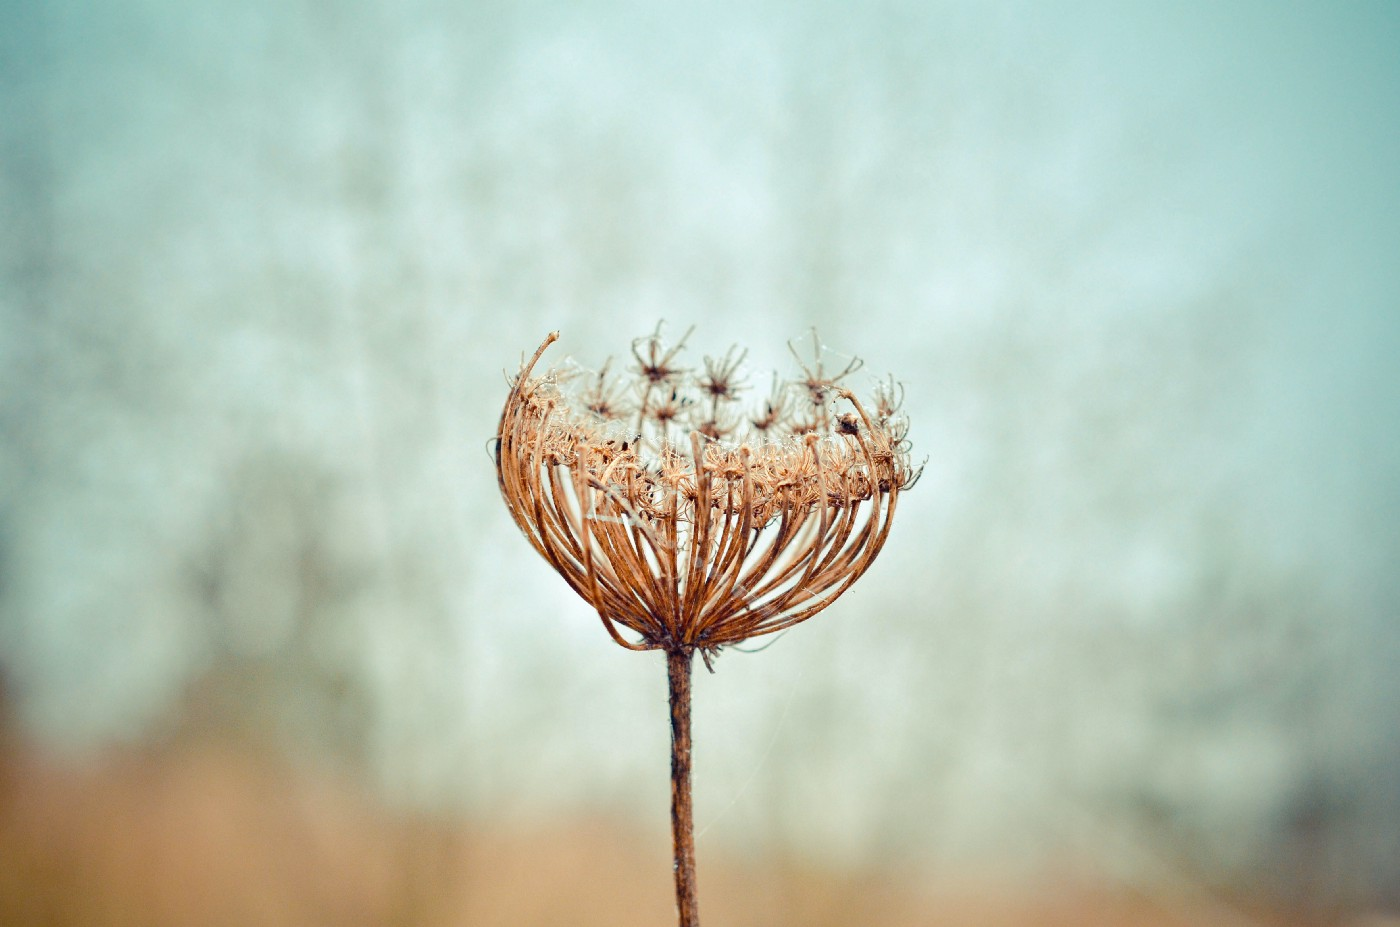 A photo of a dried up iron flower.